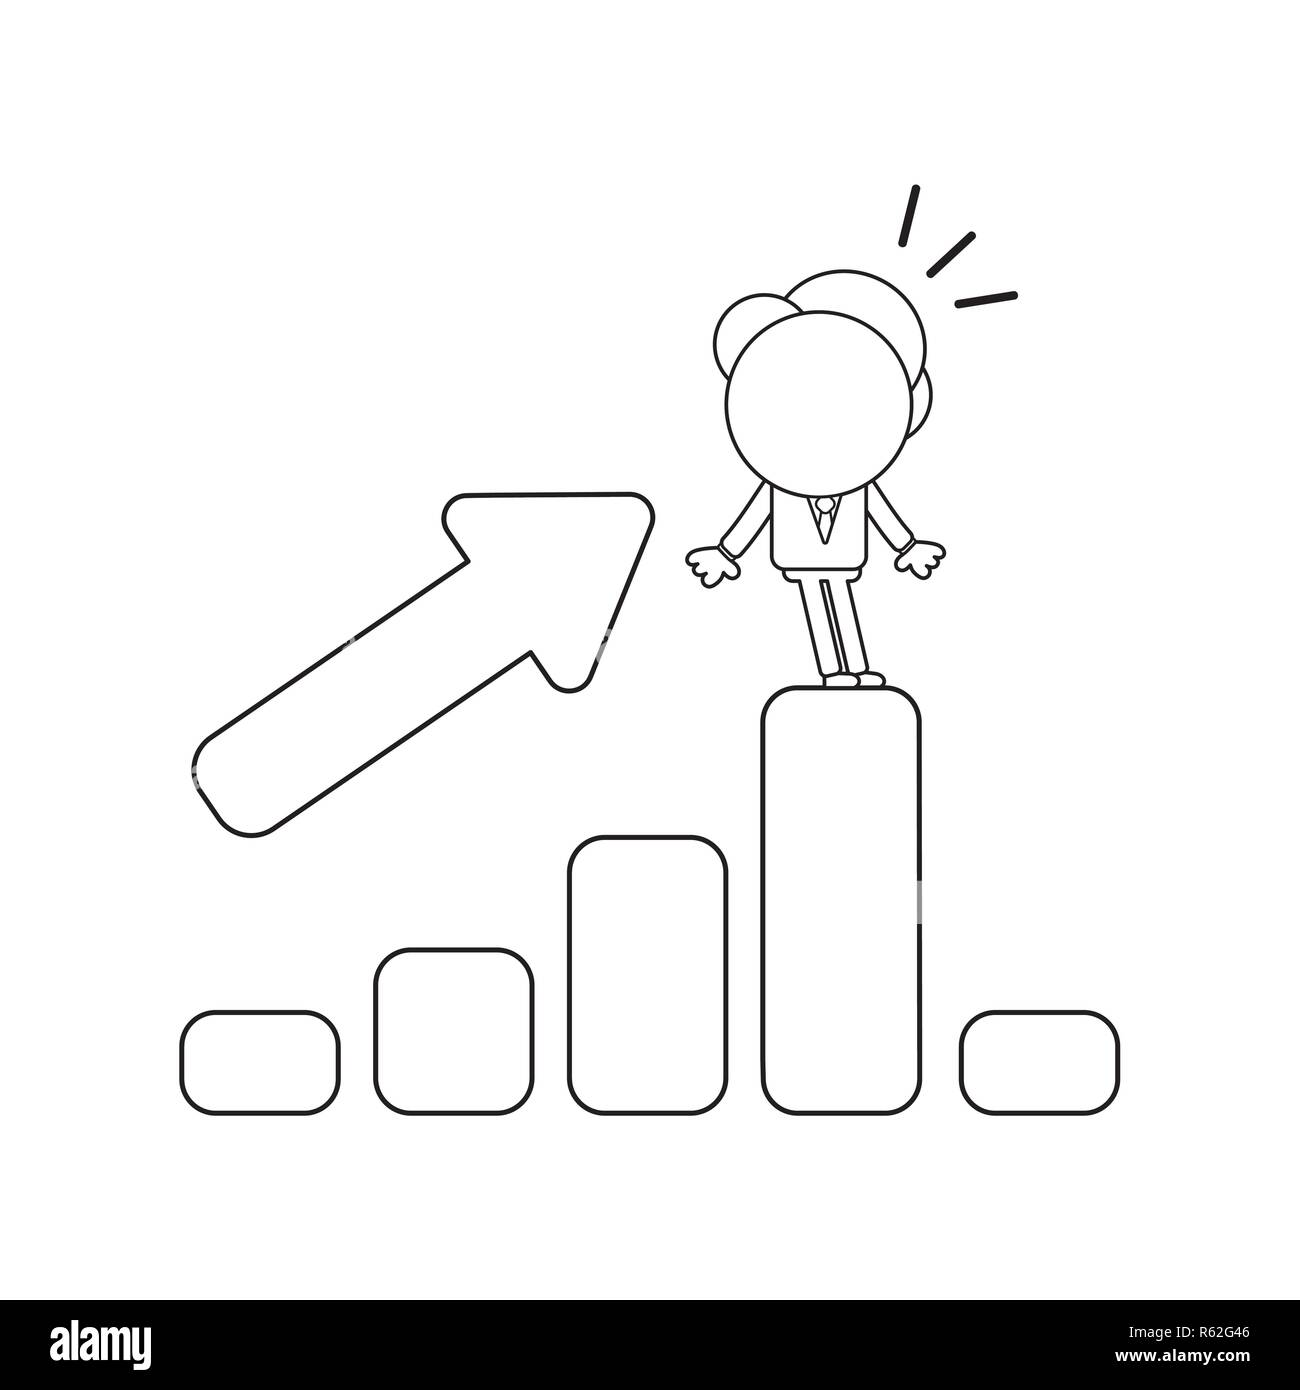 Vector illustration concept of businessman character standing on sales bar graph moving up and down. Black outline. - Stock Image